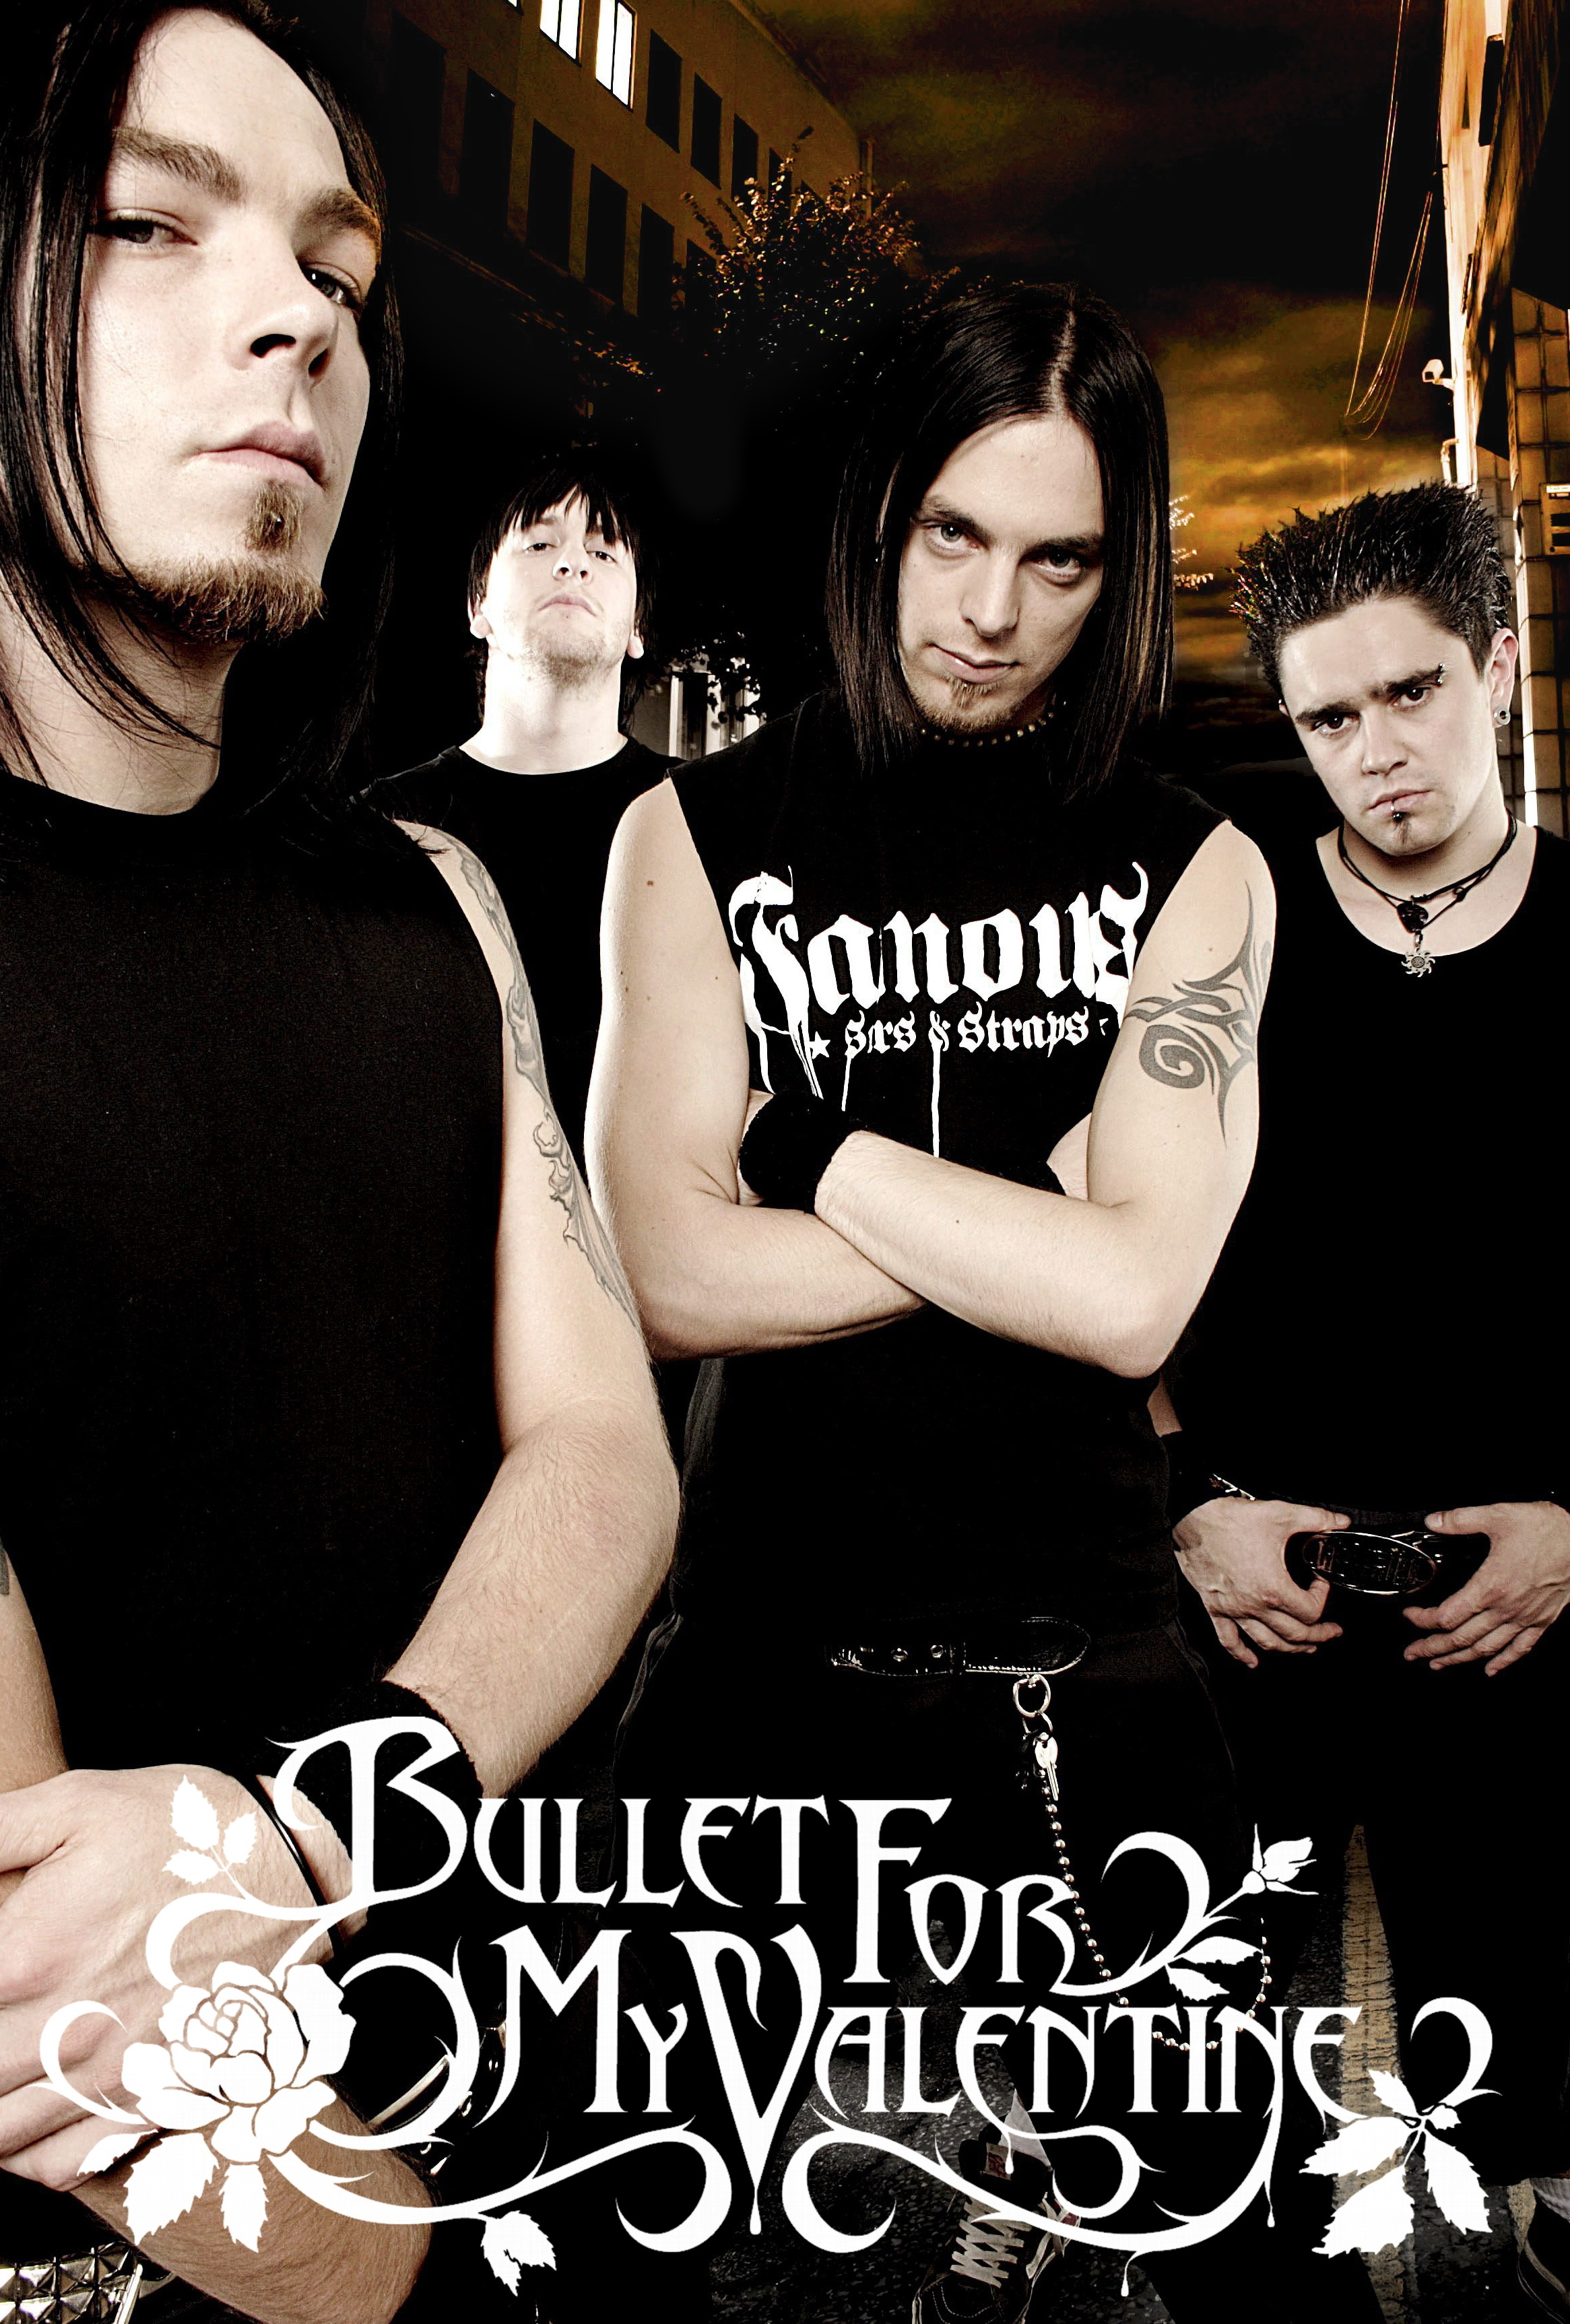 bullet for my valentine - photo #25